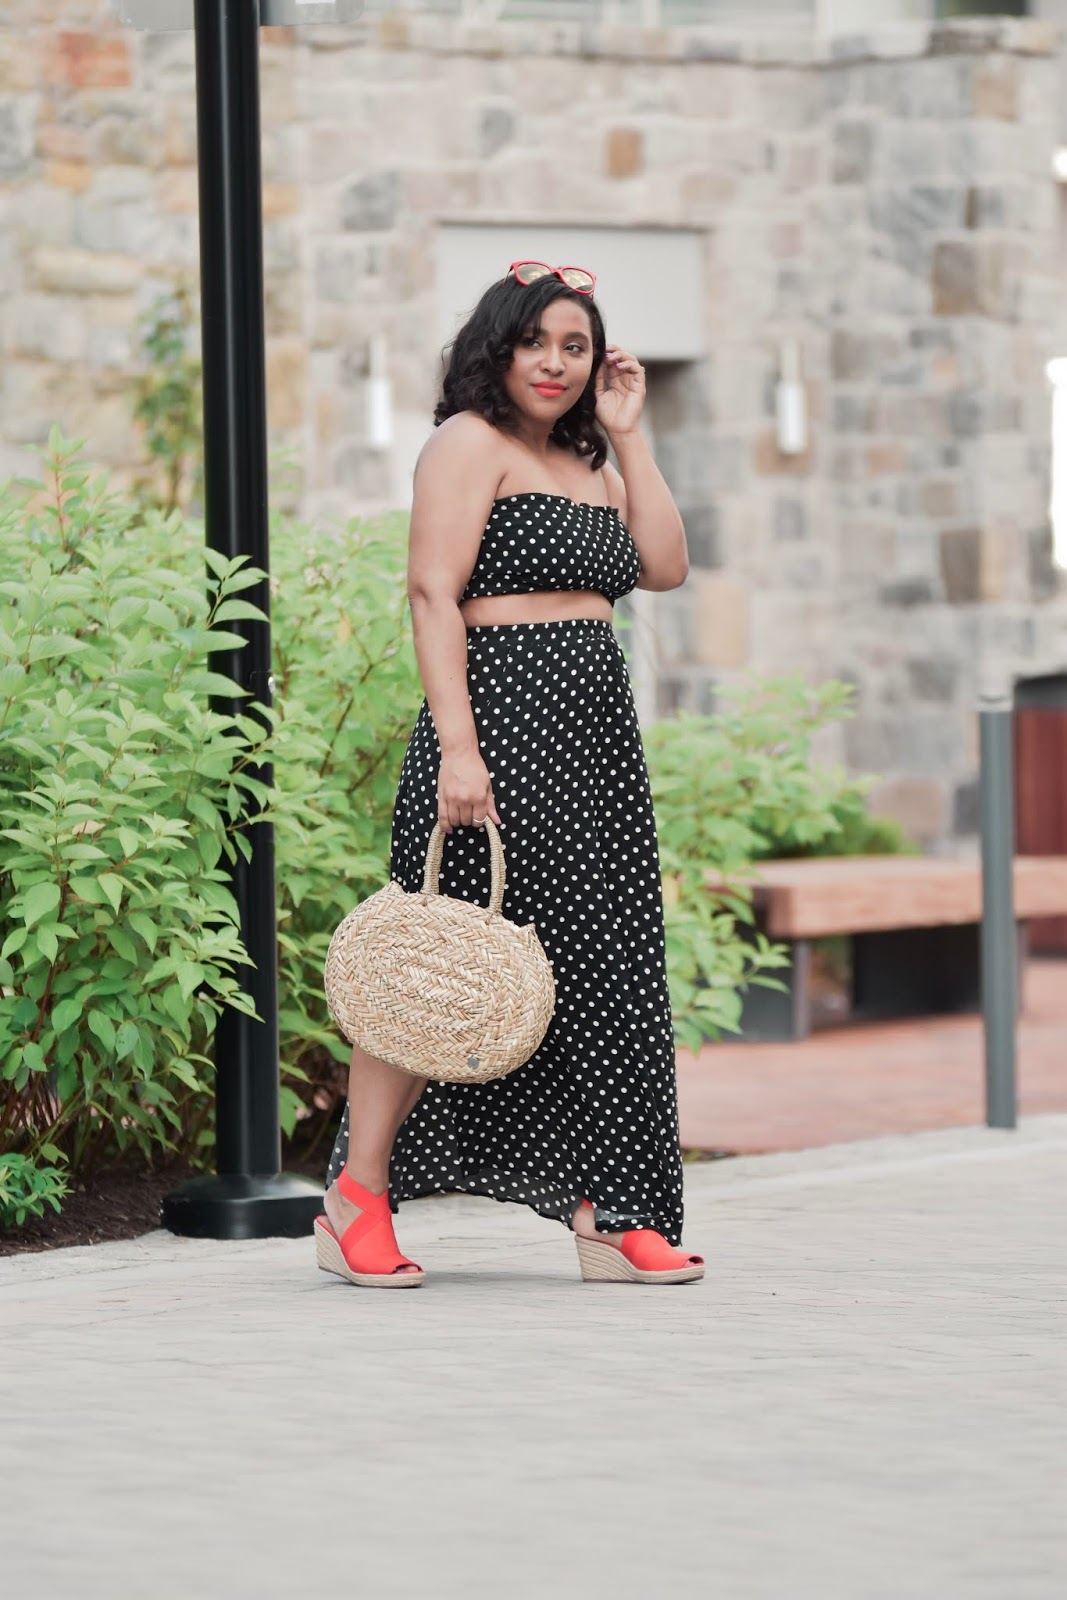 shein, sheingals, polka dot oufits, two piece set, summer outfit ideas, polka dot trend, patty's kloset